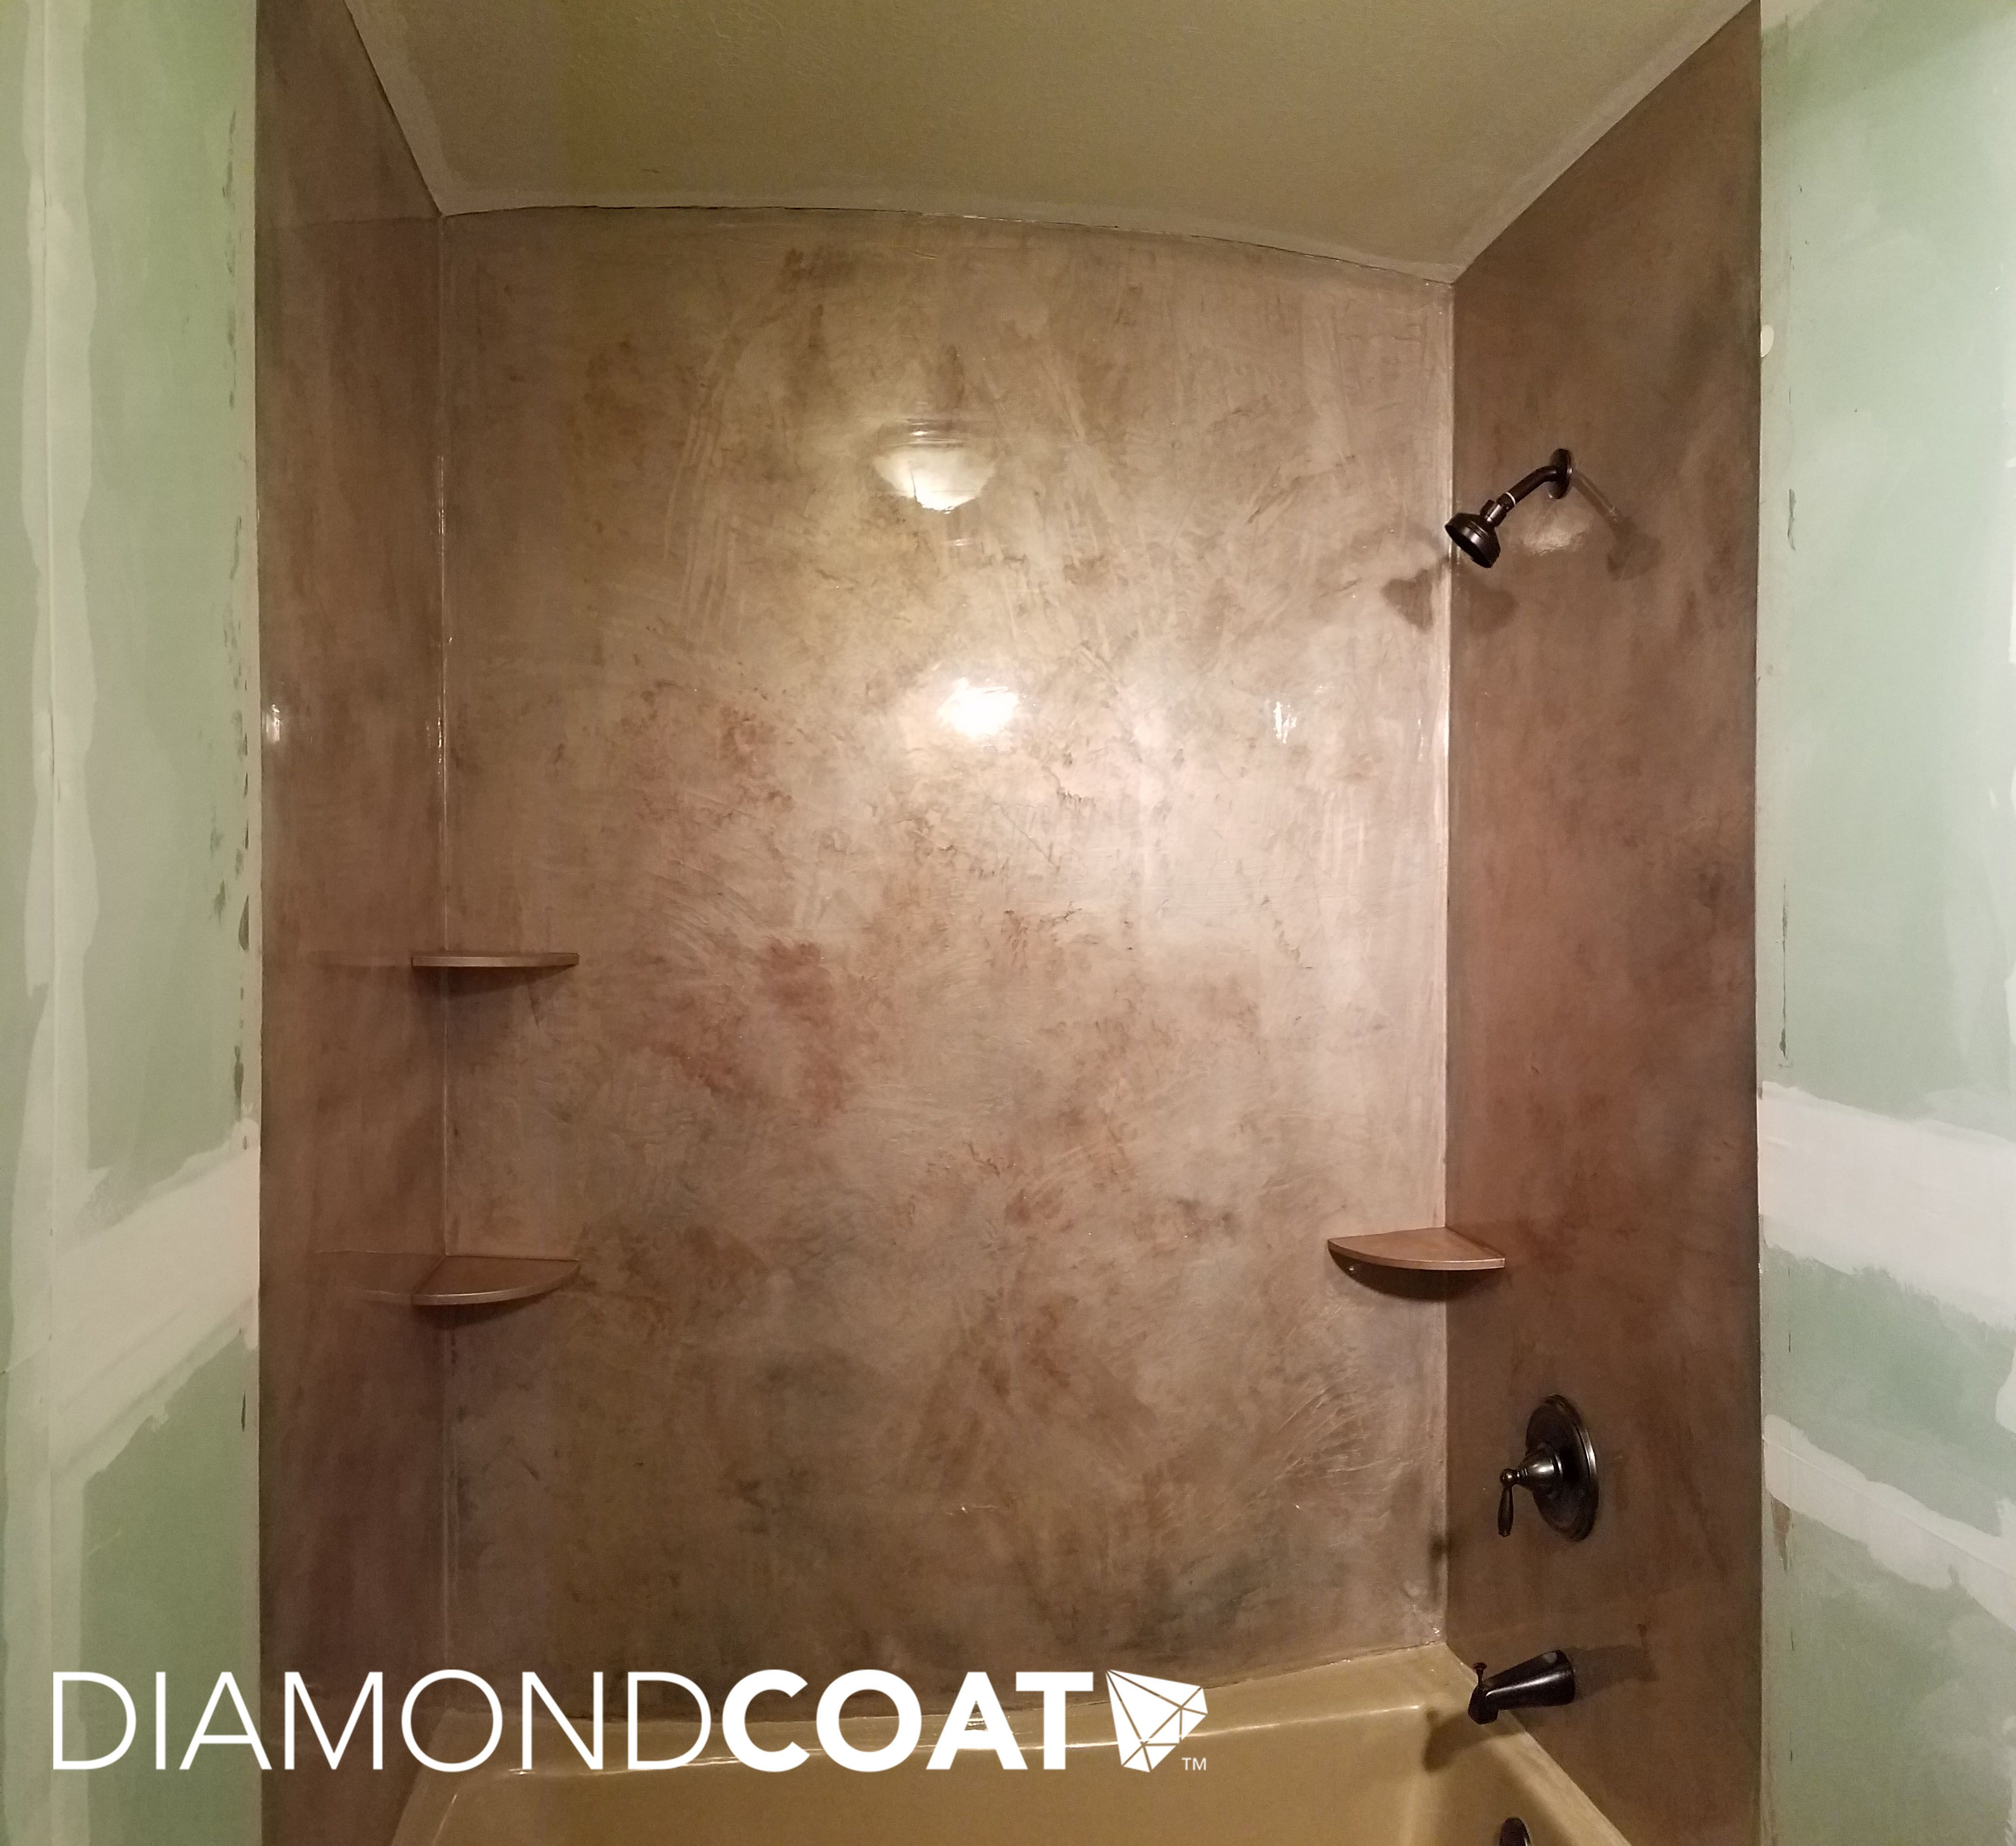 An Epoxy Shower Stall With No Grout Lines To Clean Love The Natural Stone Effect Marble Shower Walls Shower Wall Shower Surround